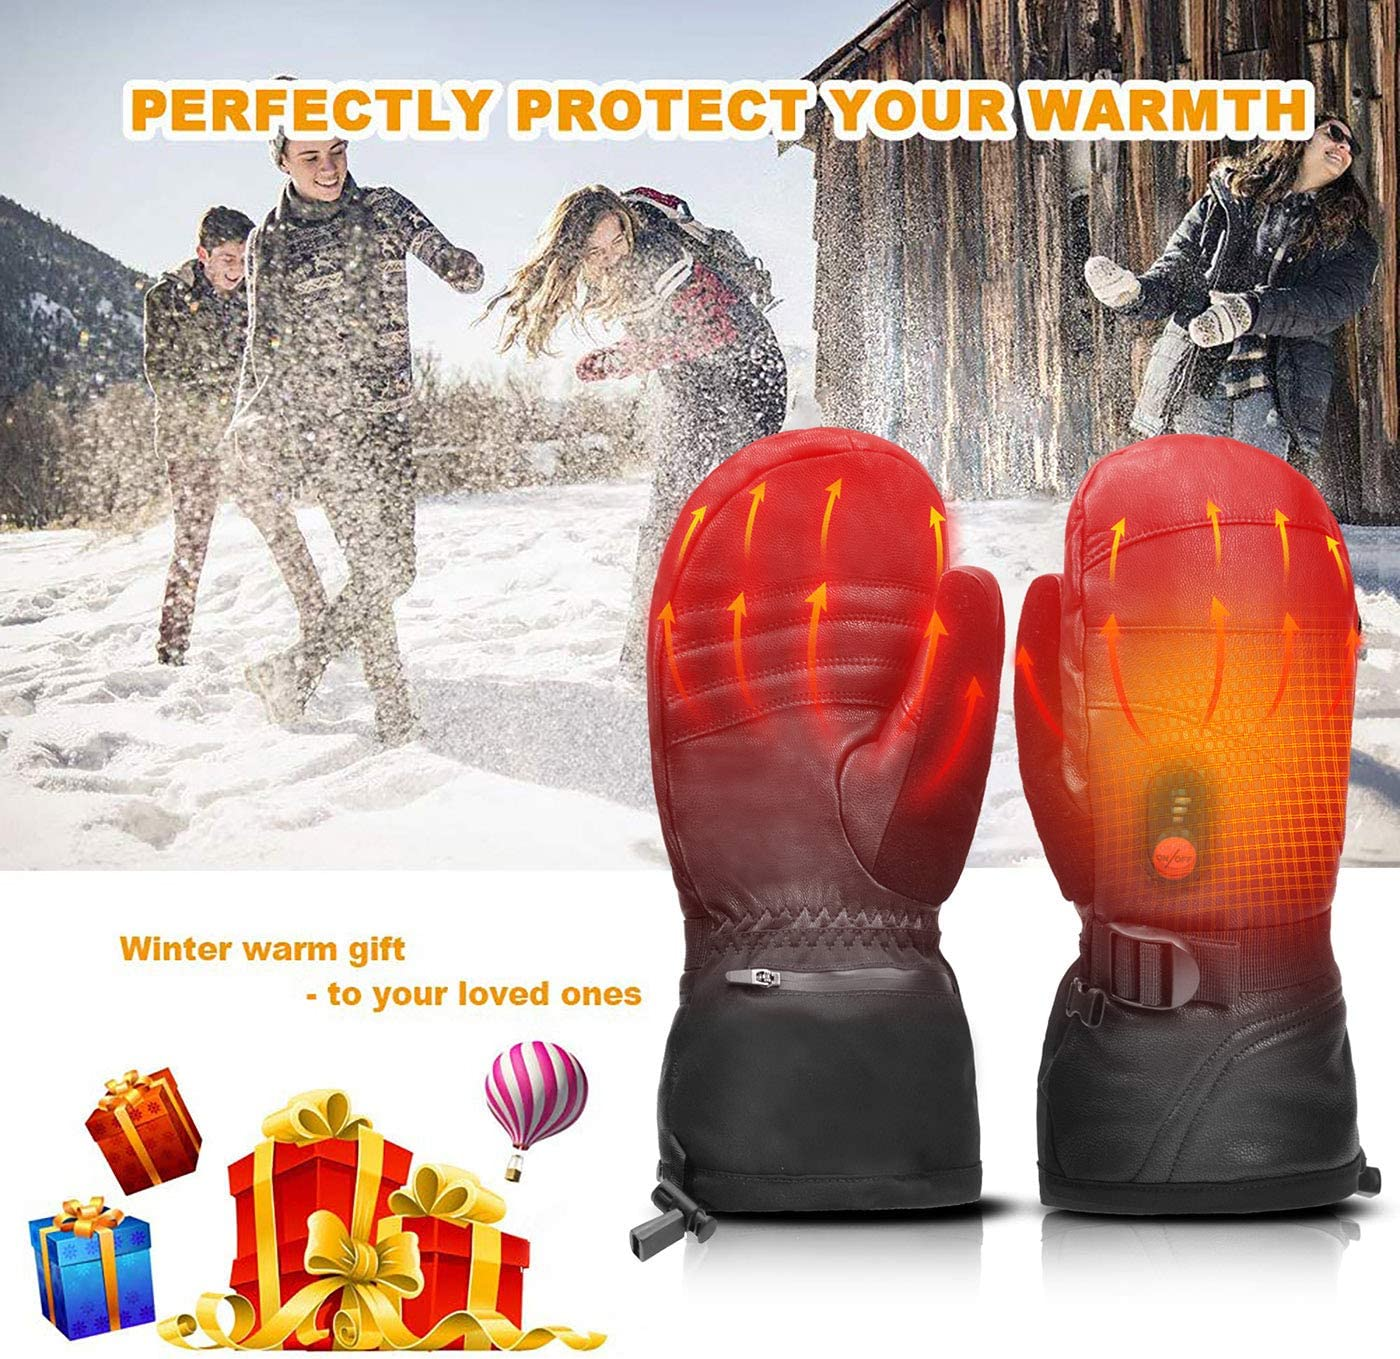 day wolf Heated Gloves Men Women Heated Mittens Ski,7.4V 2200MAH Electric Rechargeable Battery Gloves for Winter Skiing Skating Snow Camping Hiking Heated Arthritis Hand Warmer Glove